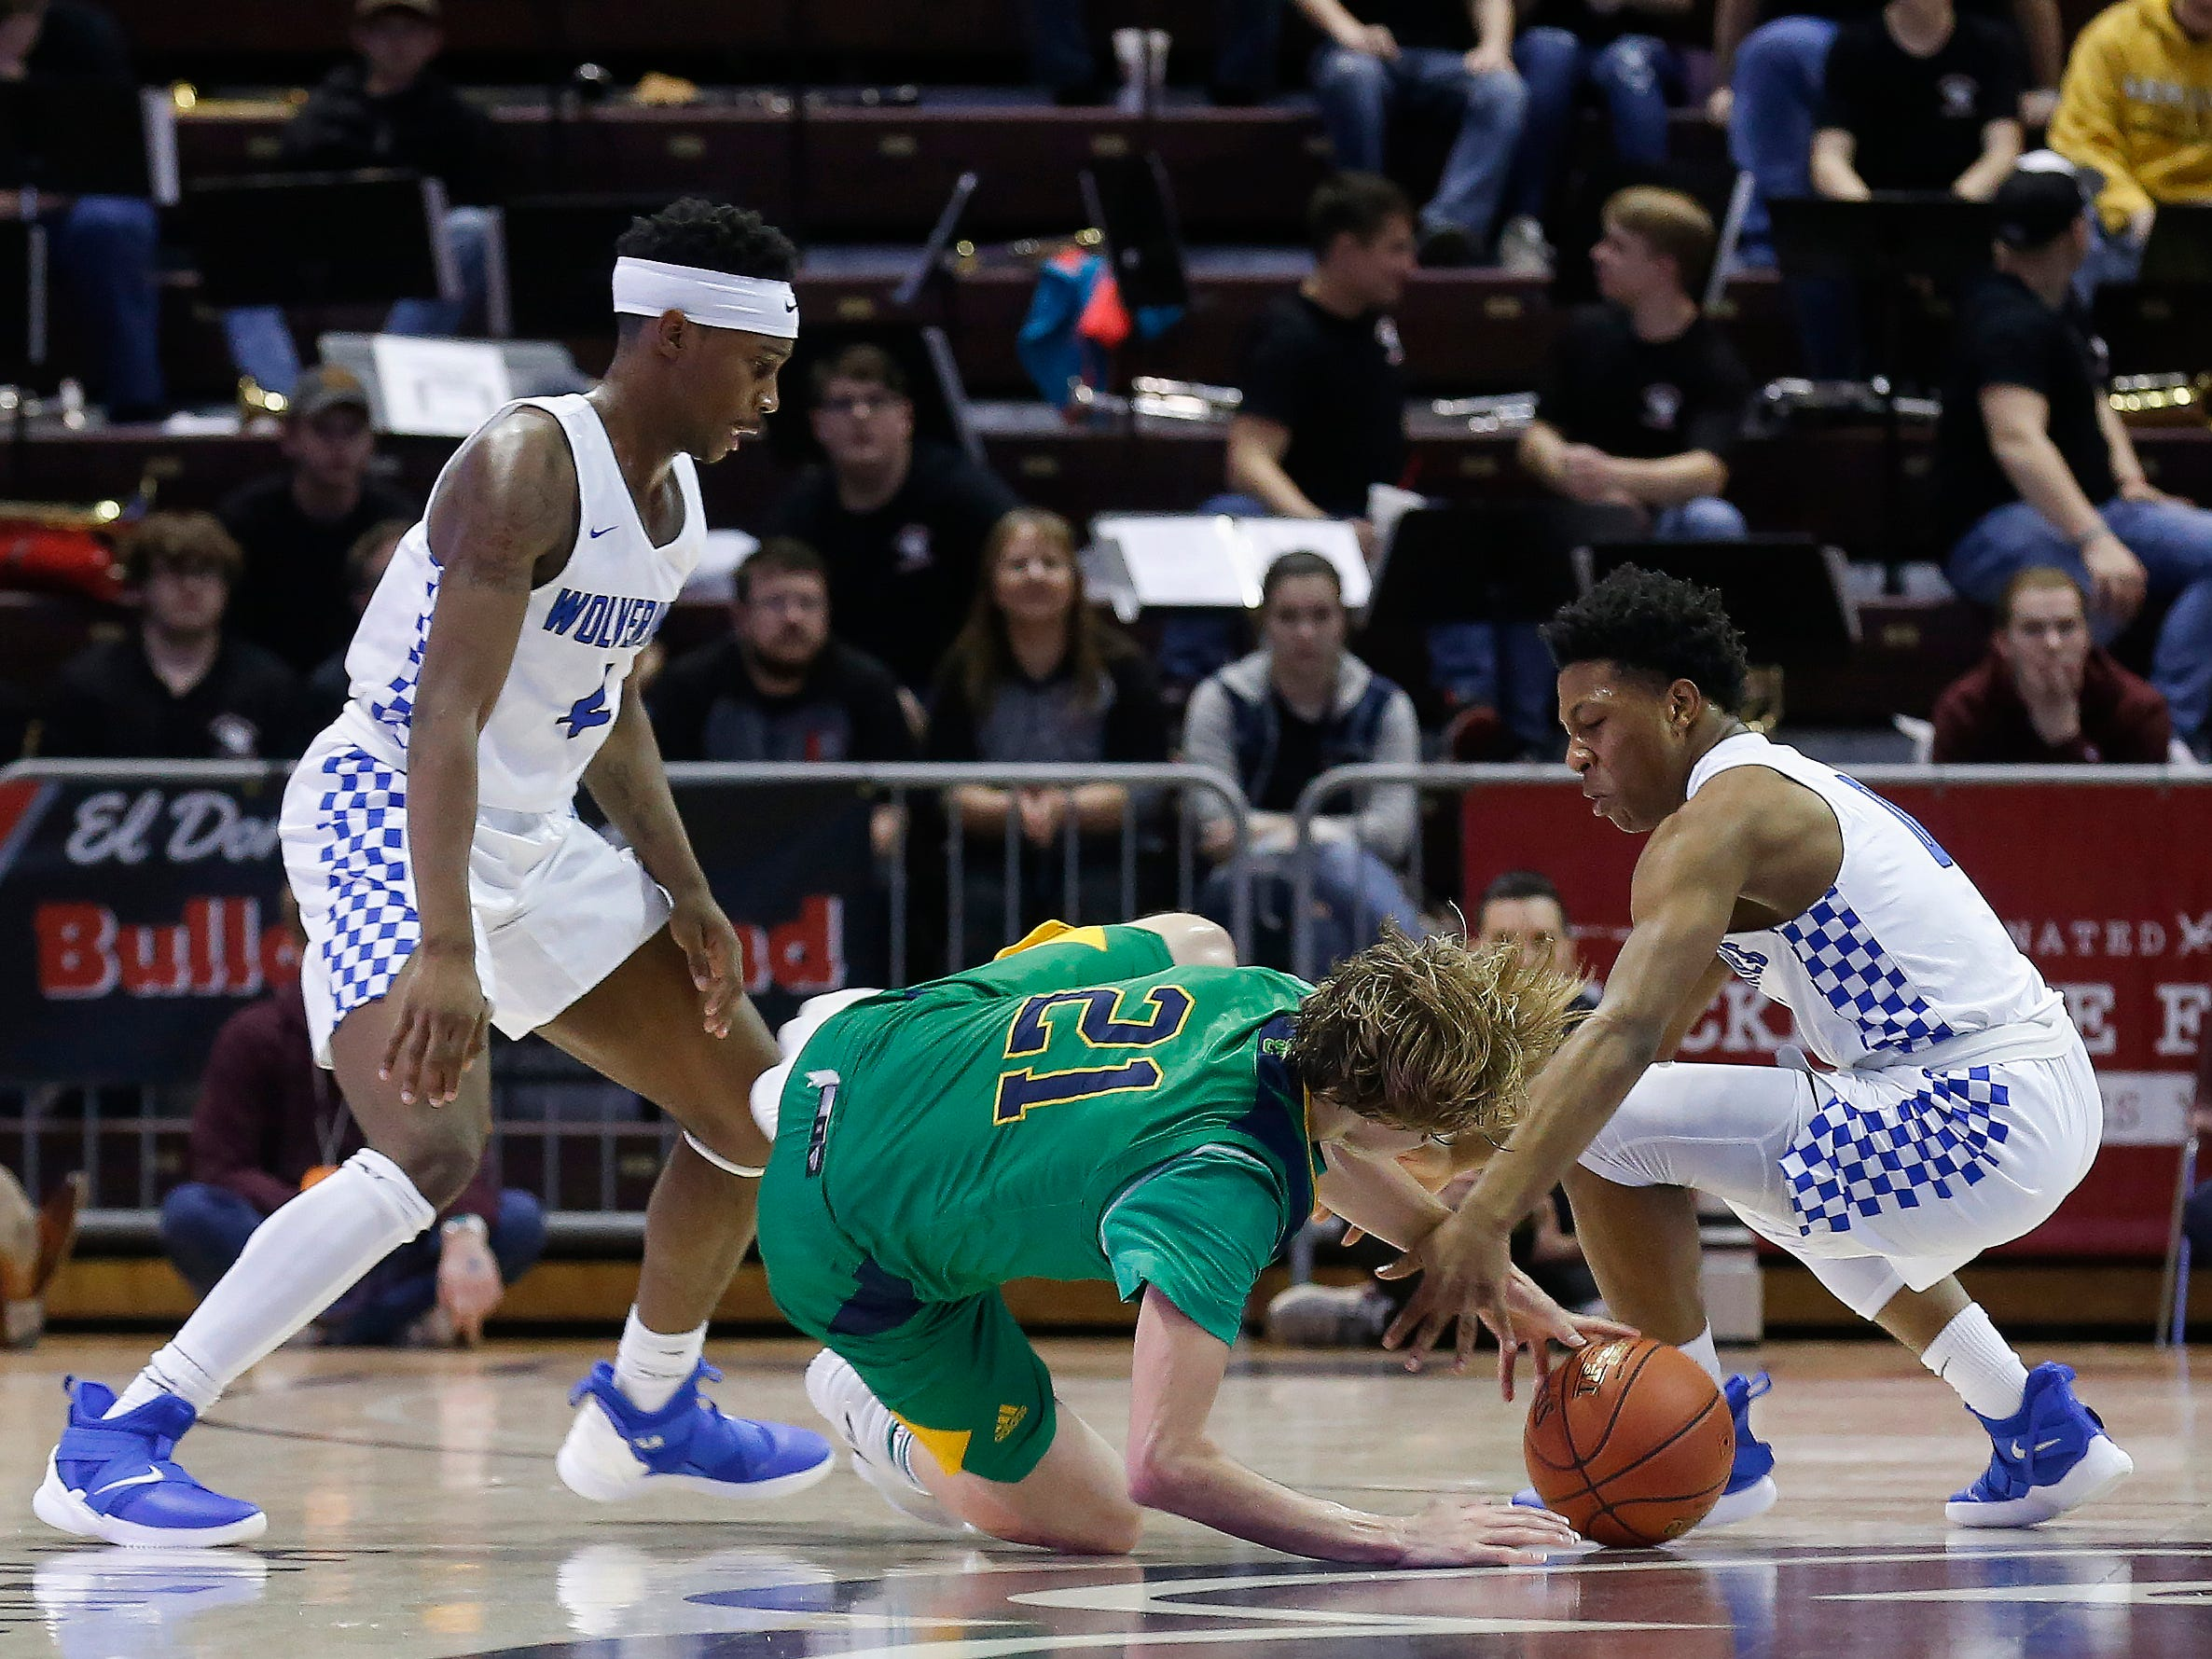 Springfield Catholic fell to Vashon 69-59 in the Class 3 state championship game at JQH Arena on Friday, March 8, 2019.